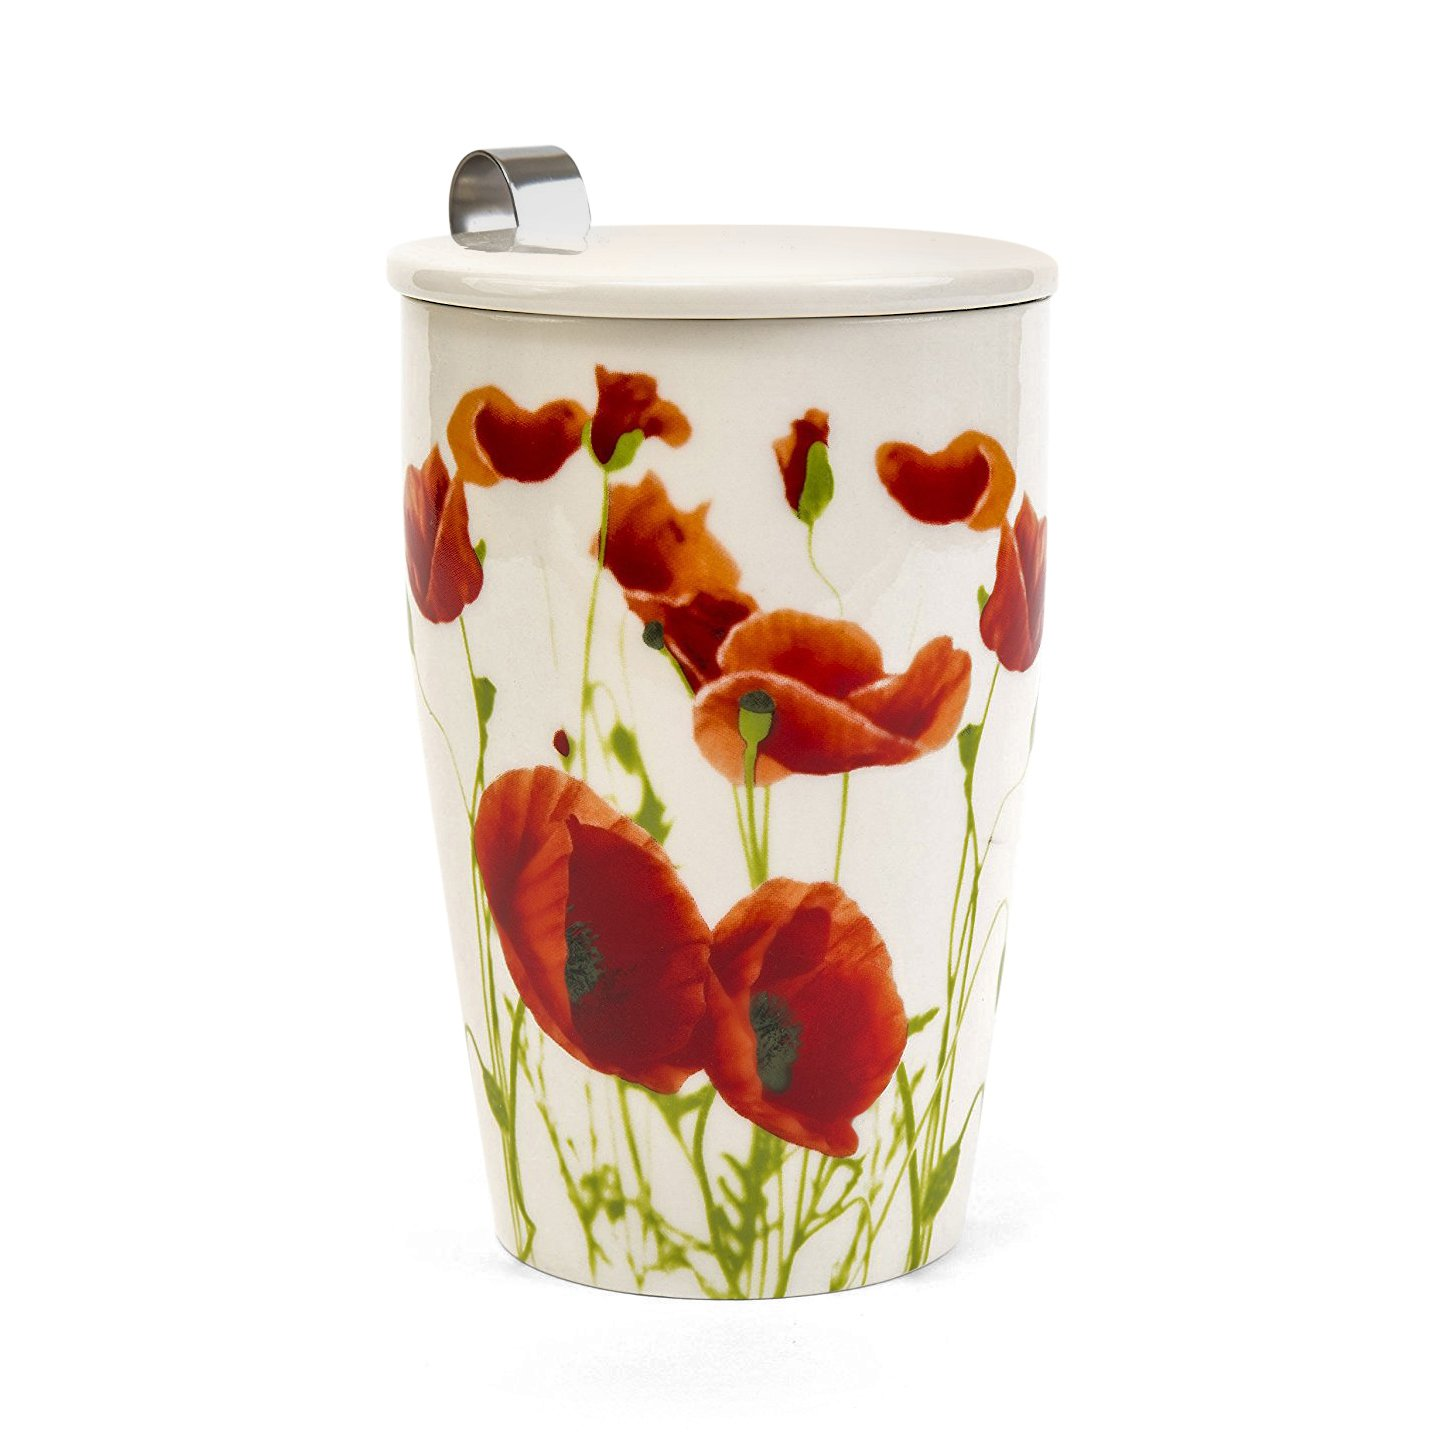 Stenhouse Porcelain mug with tea infuser and lid - Poppies